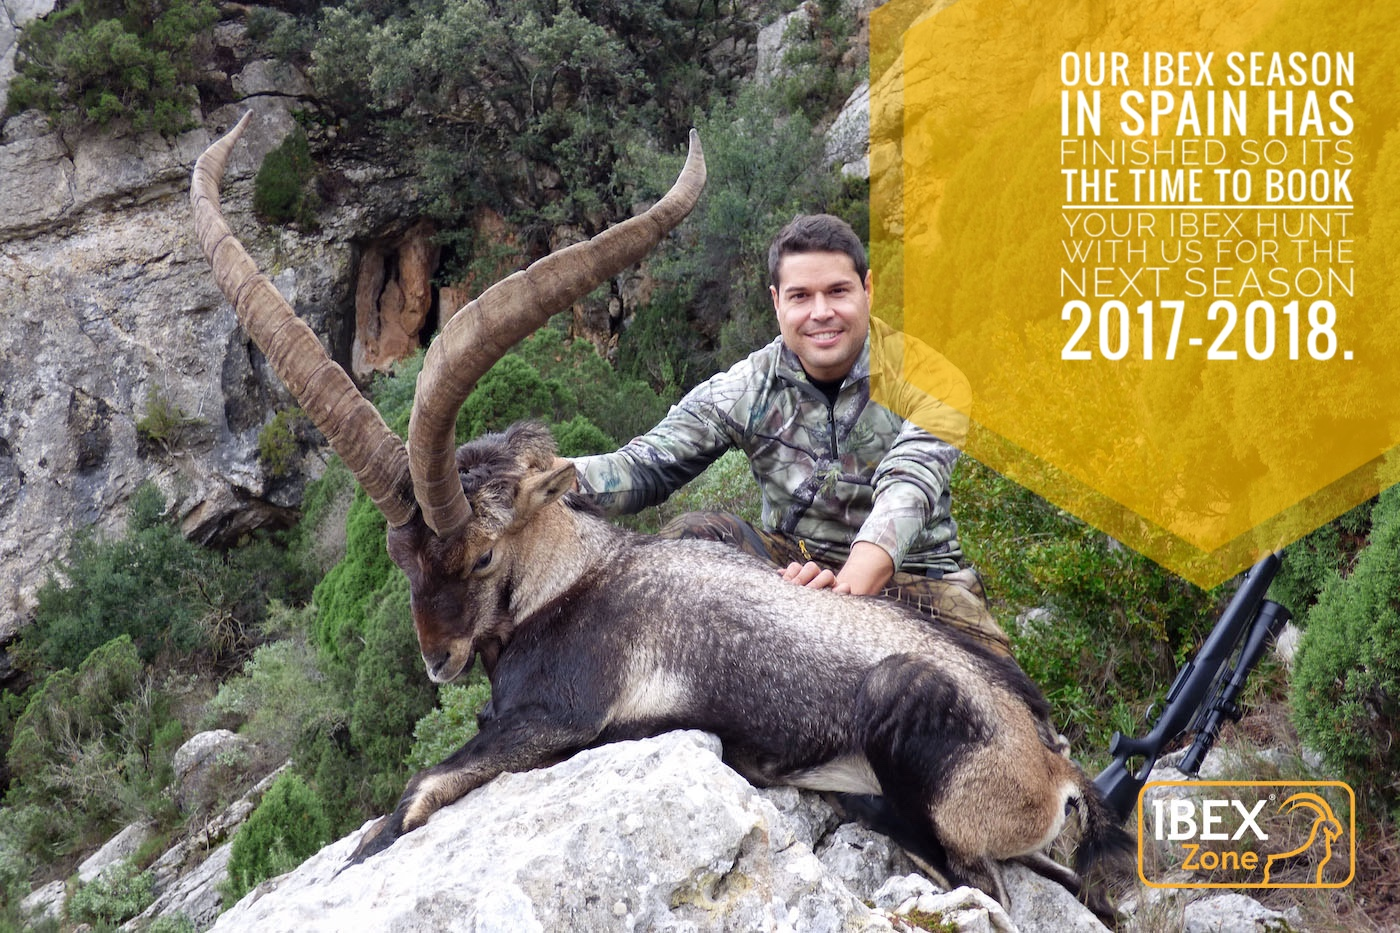 IBEX HUNT – Book your hunt right now